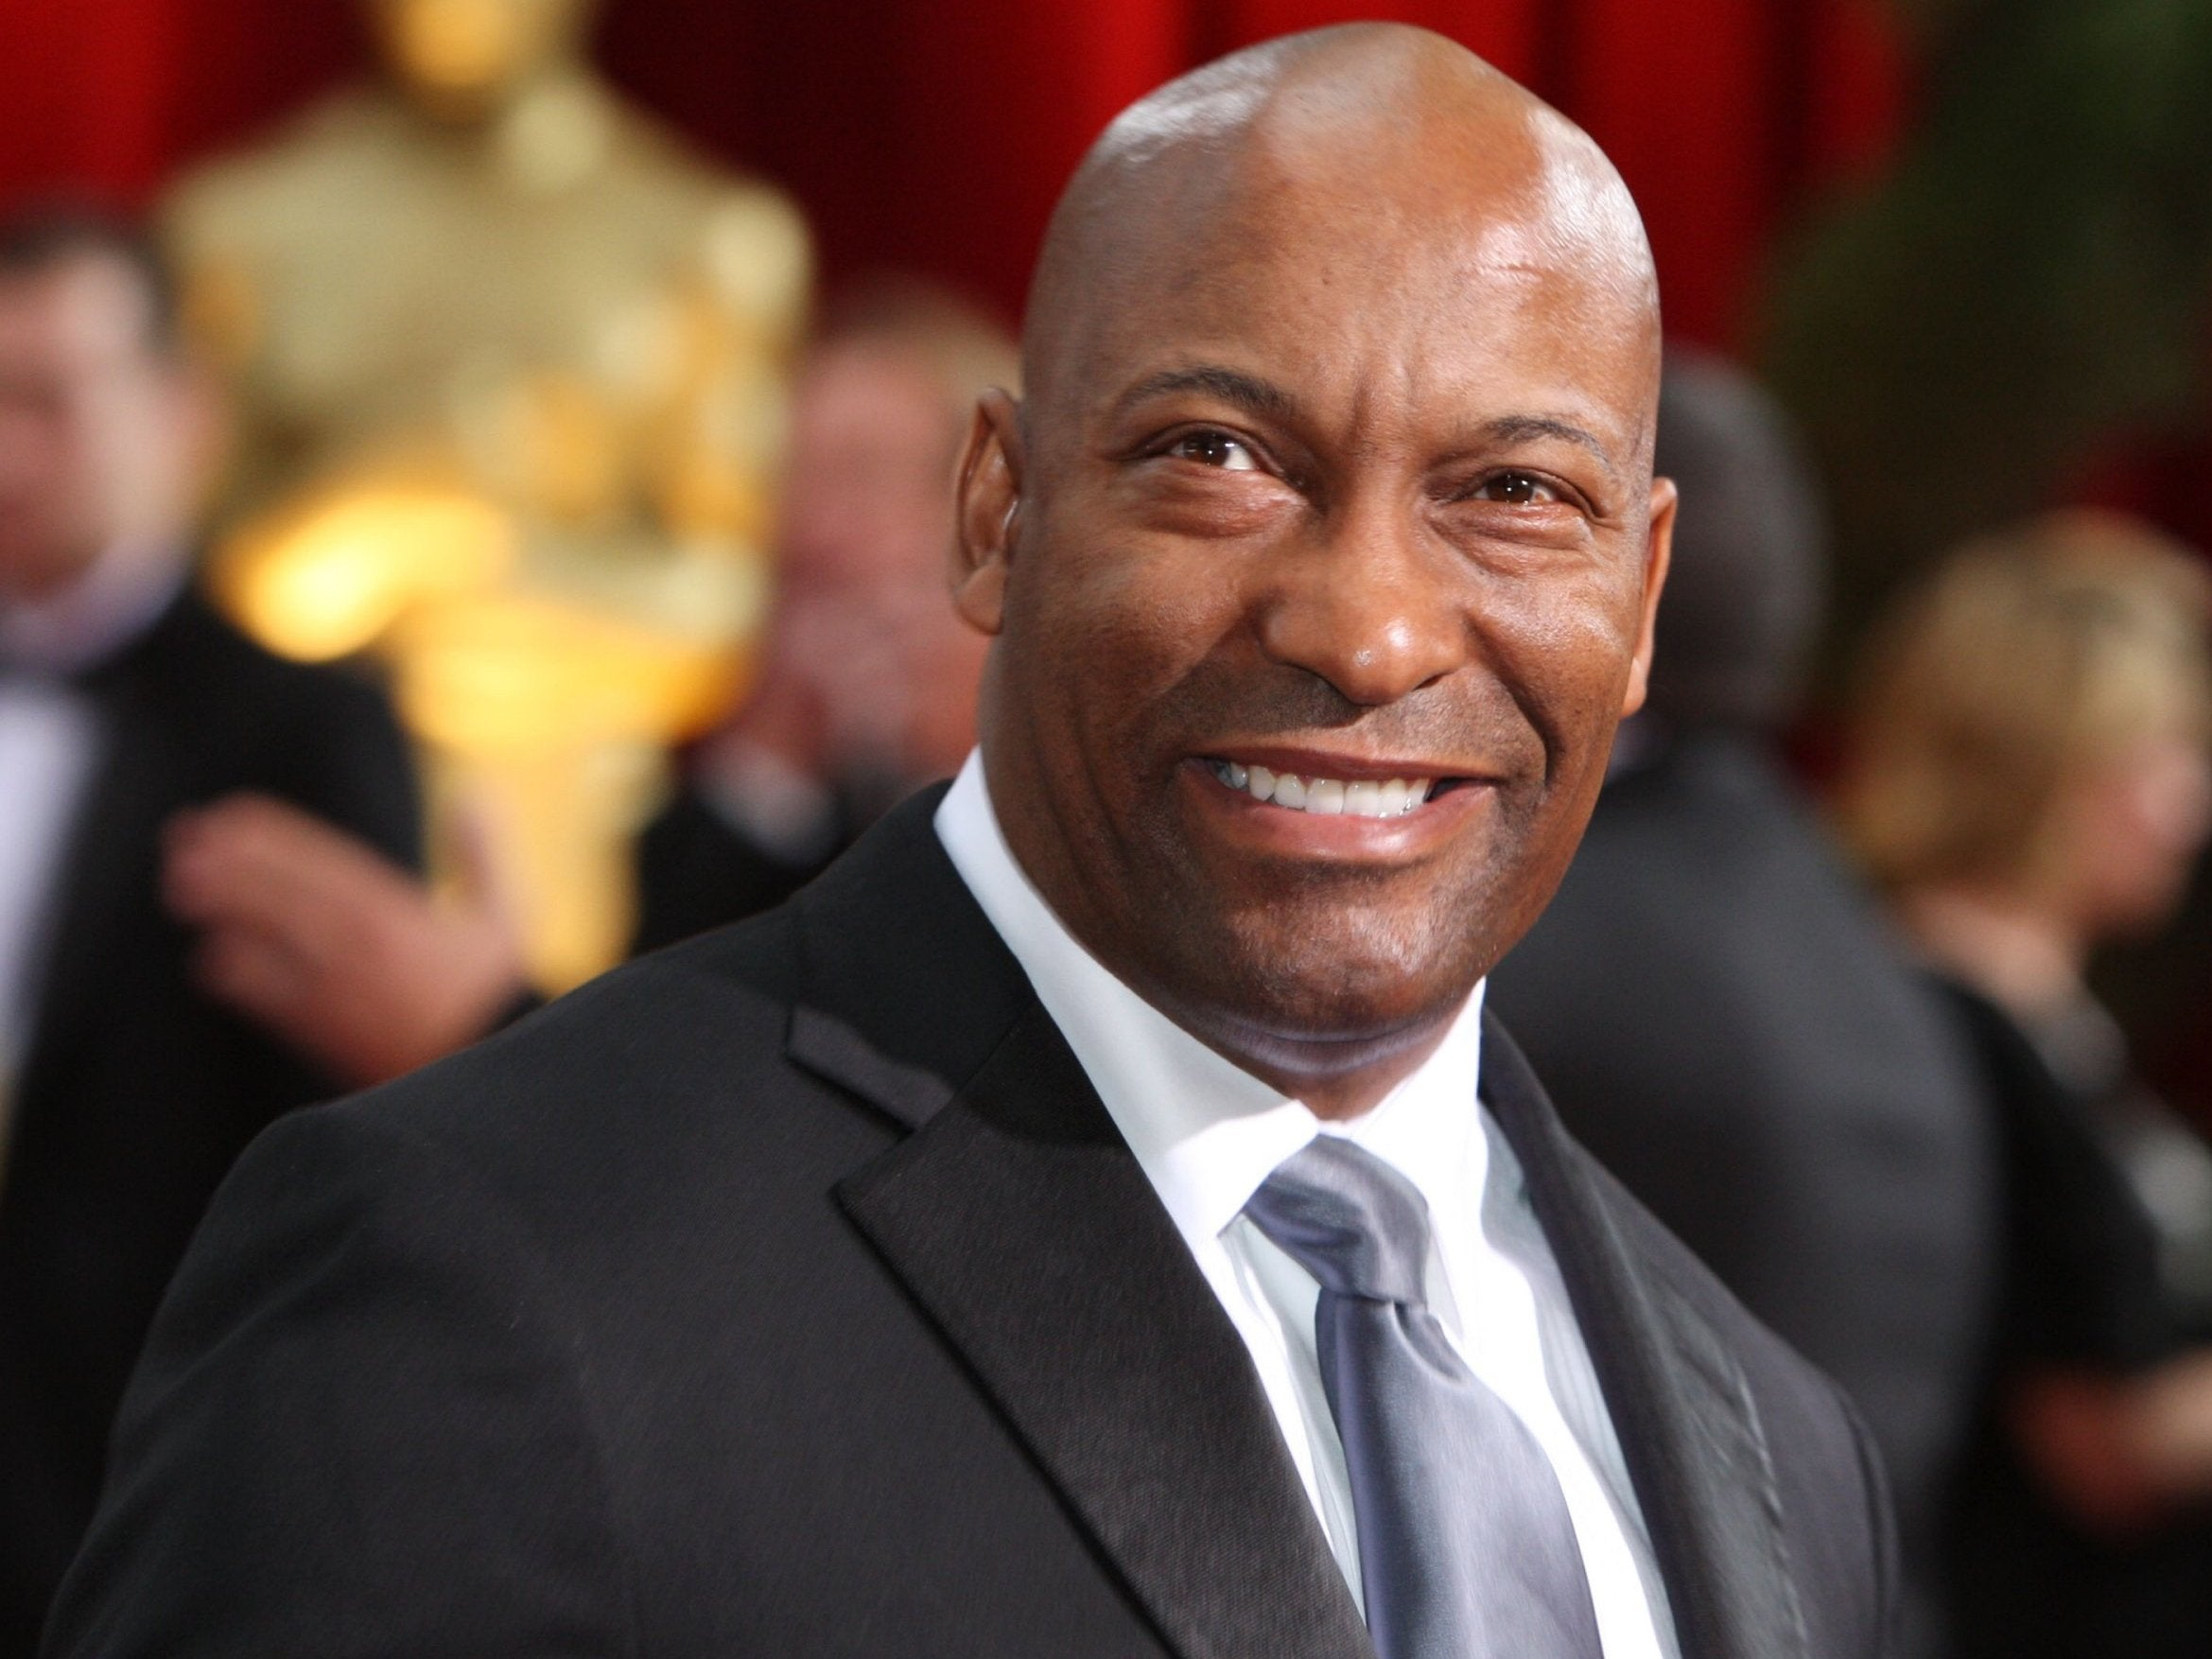 John Singleton: Funeral for Oscar-nominated director to be 'small, intimate goodbye'